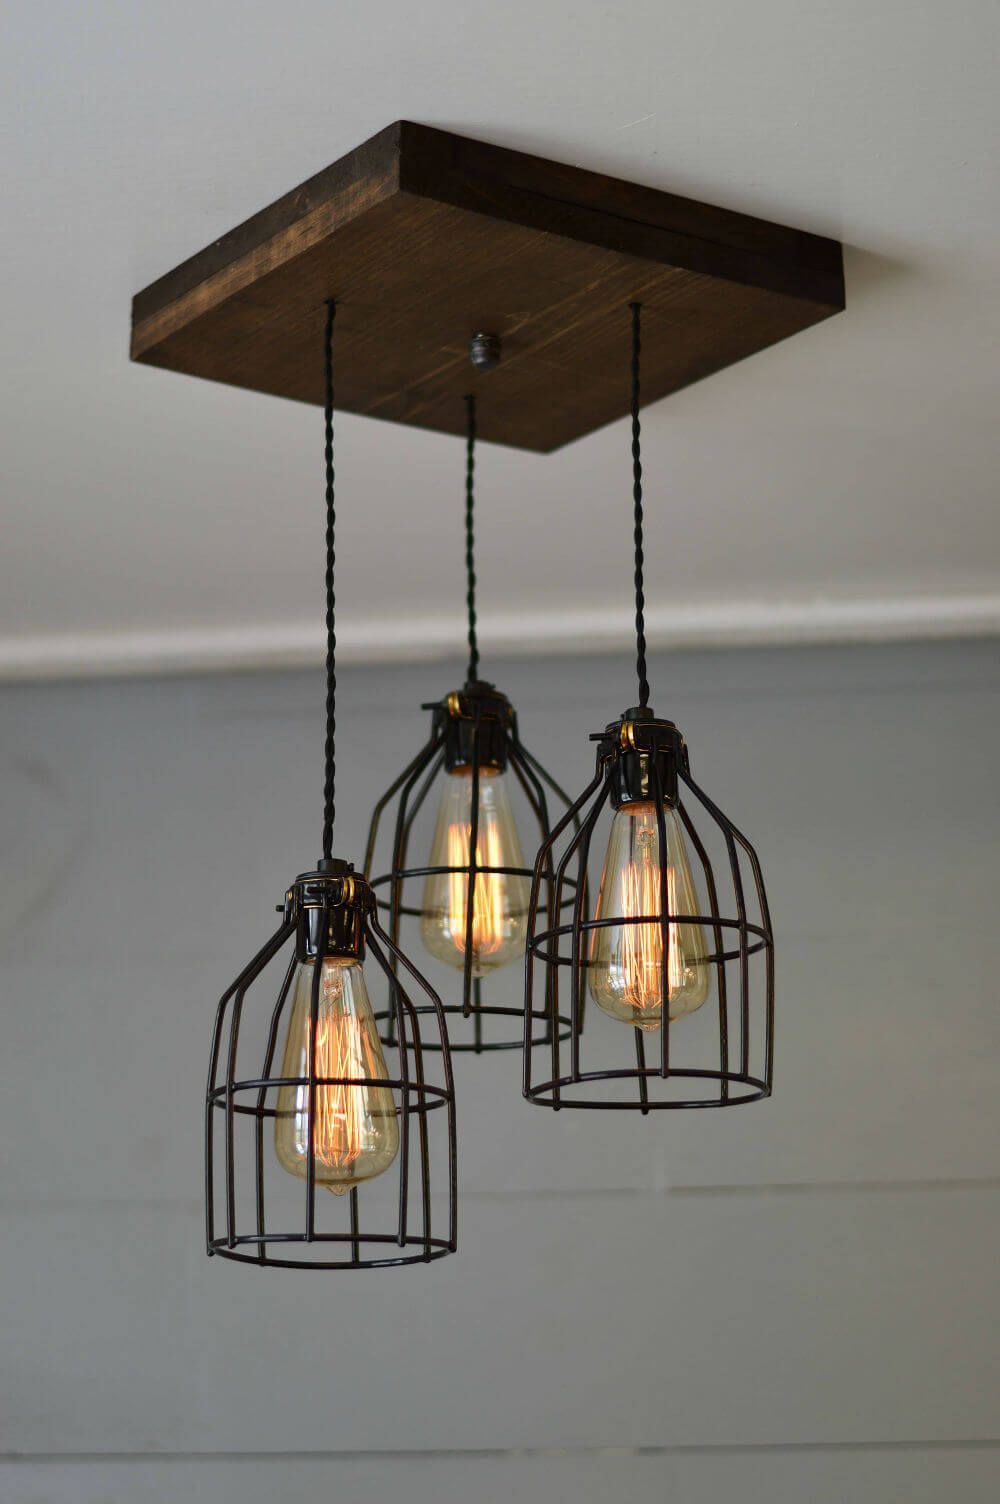 25 Fabulous Rustic Lighting Ideas To Give Your Home A Beautiful